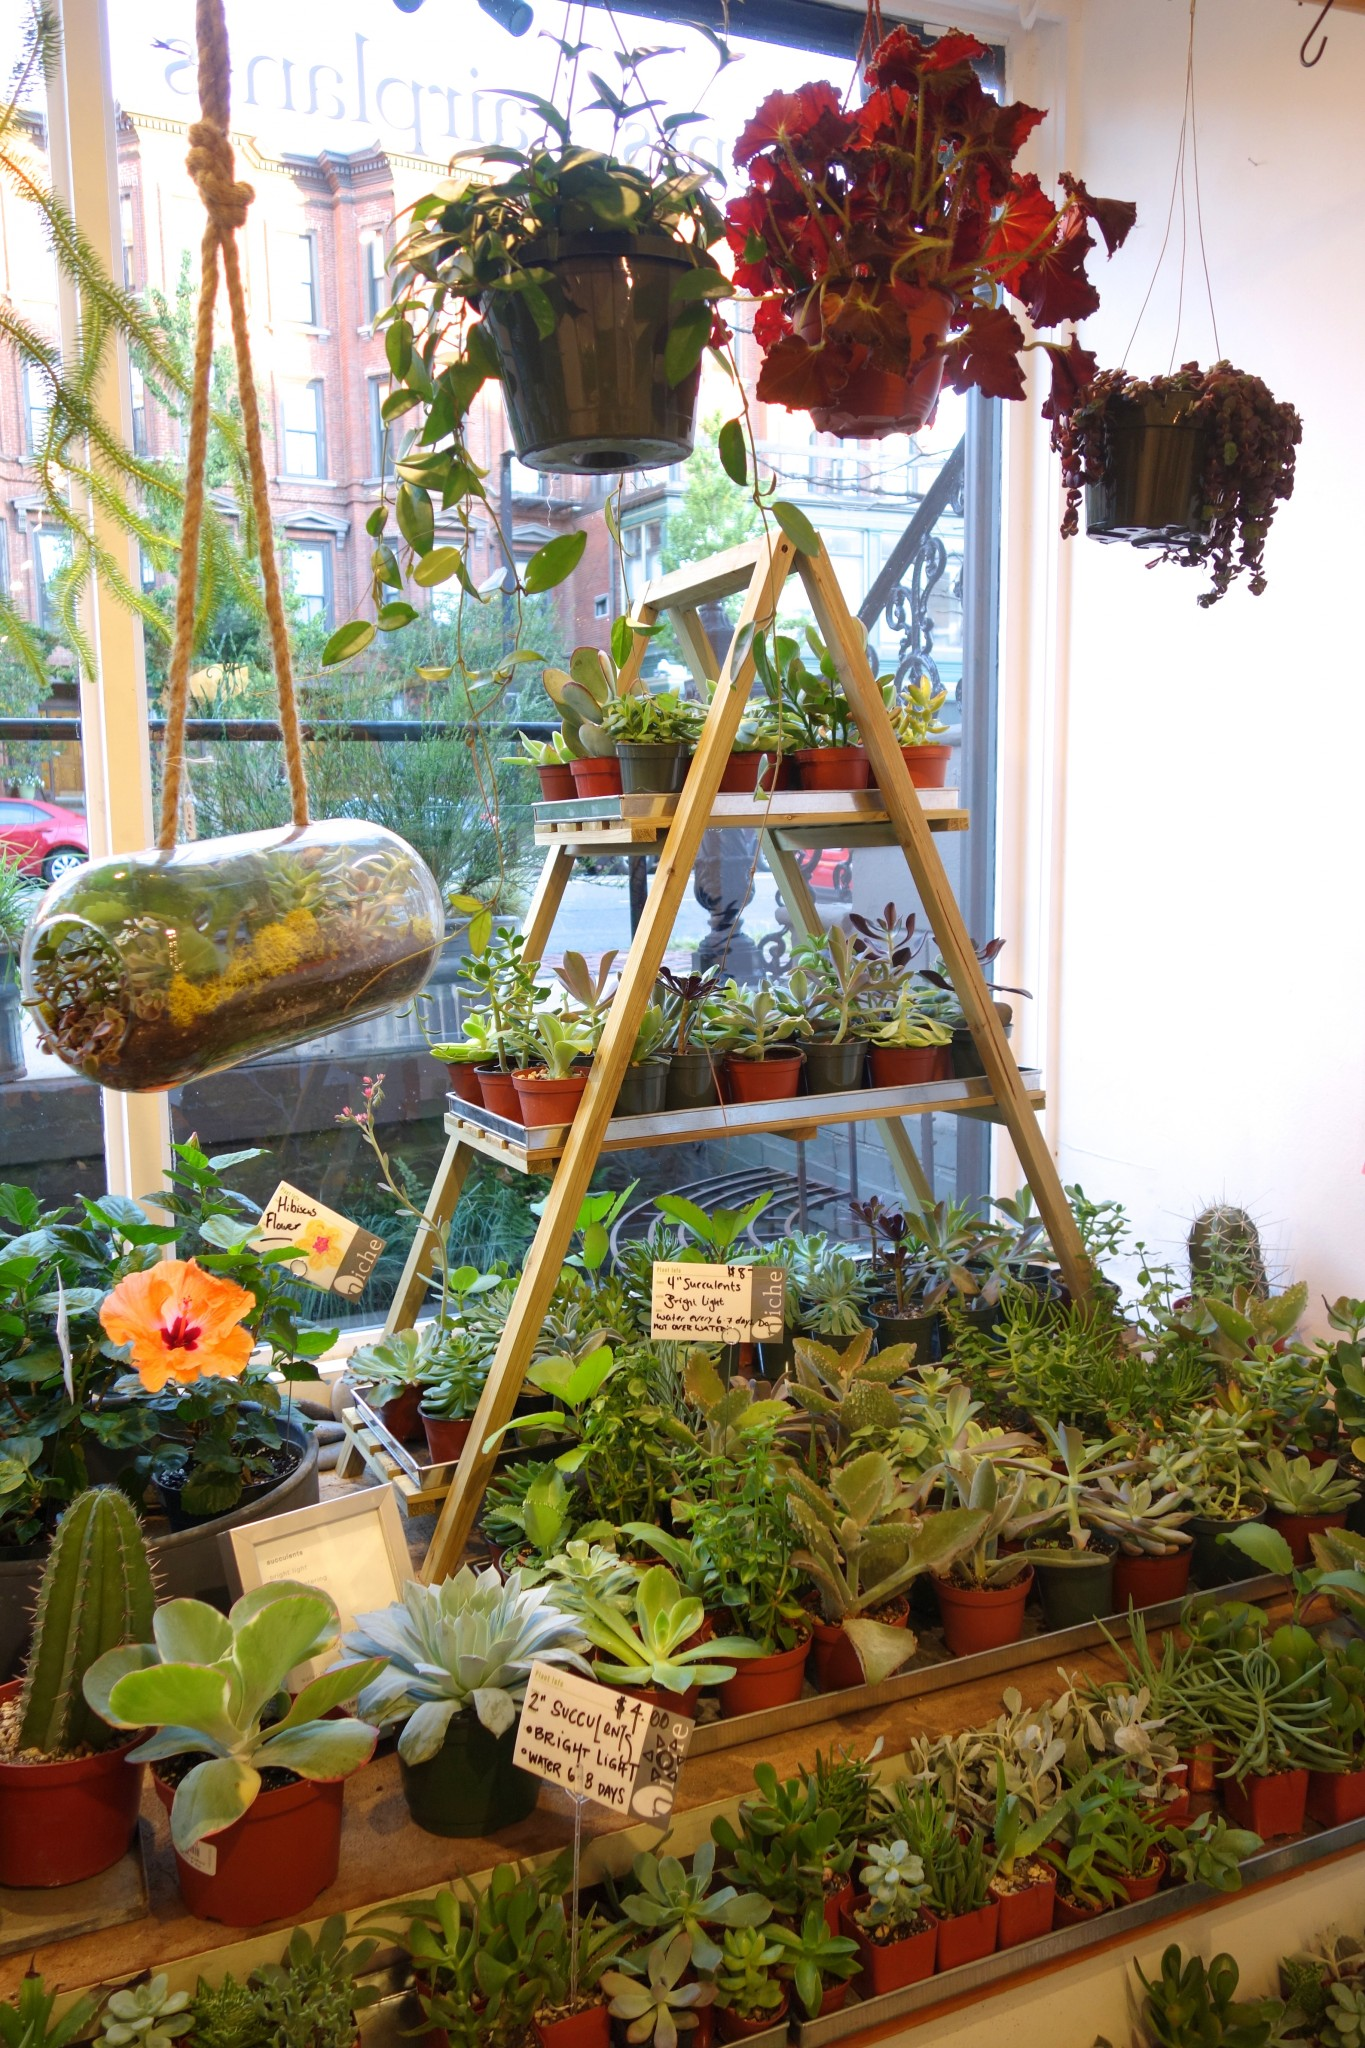 niche urban garden supply, the-alyst.com